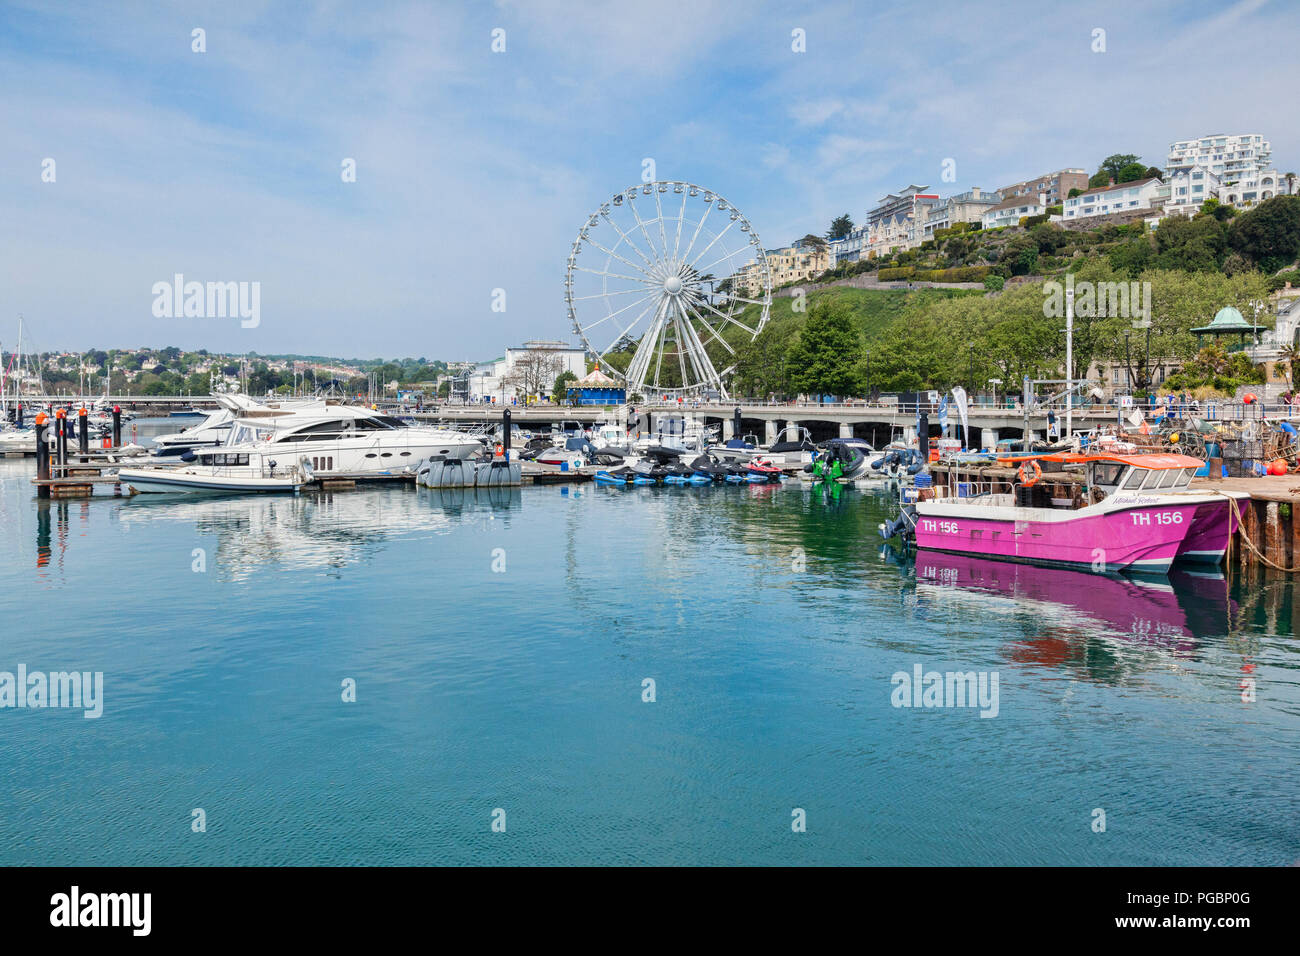 21 May 2018: Torquay, Devon, England, UK - The marina and English Riviera Wheel on a sunny spring day. - Stock Image